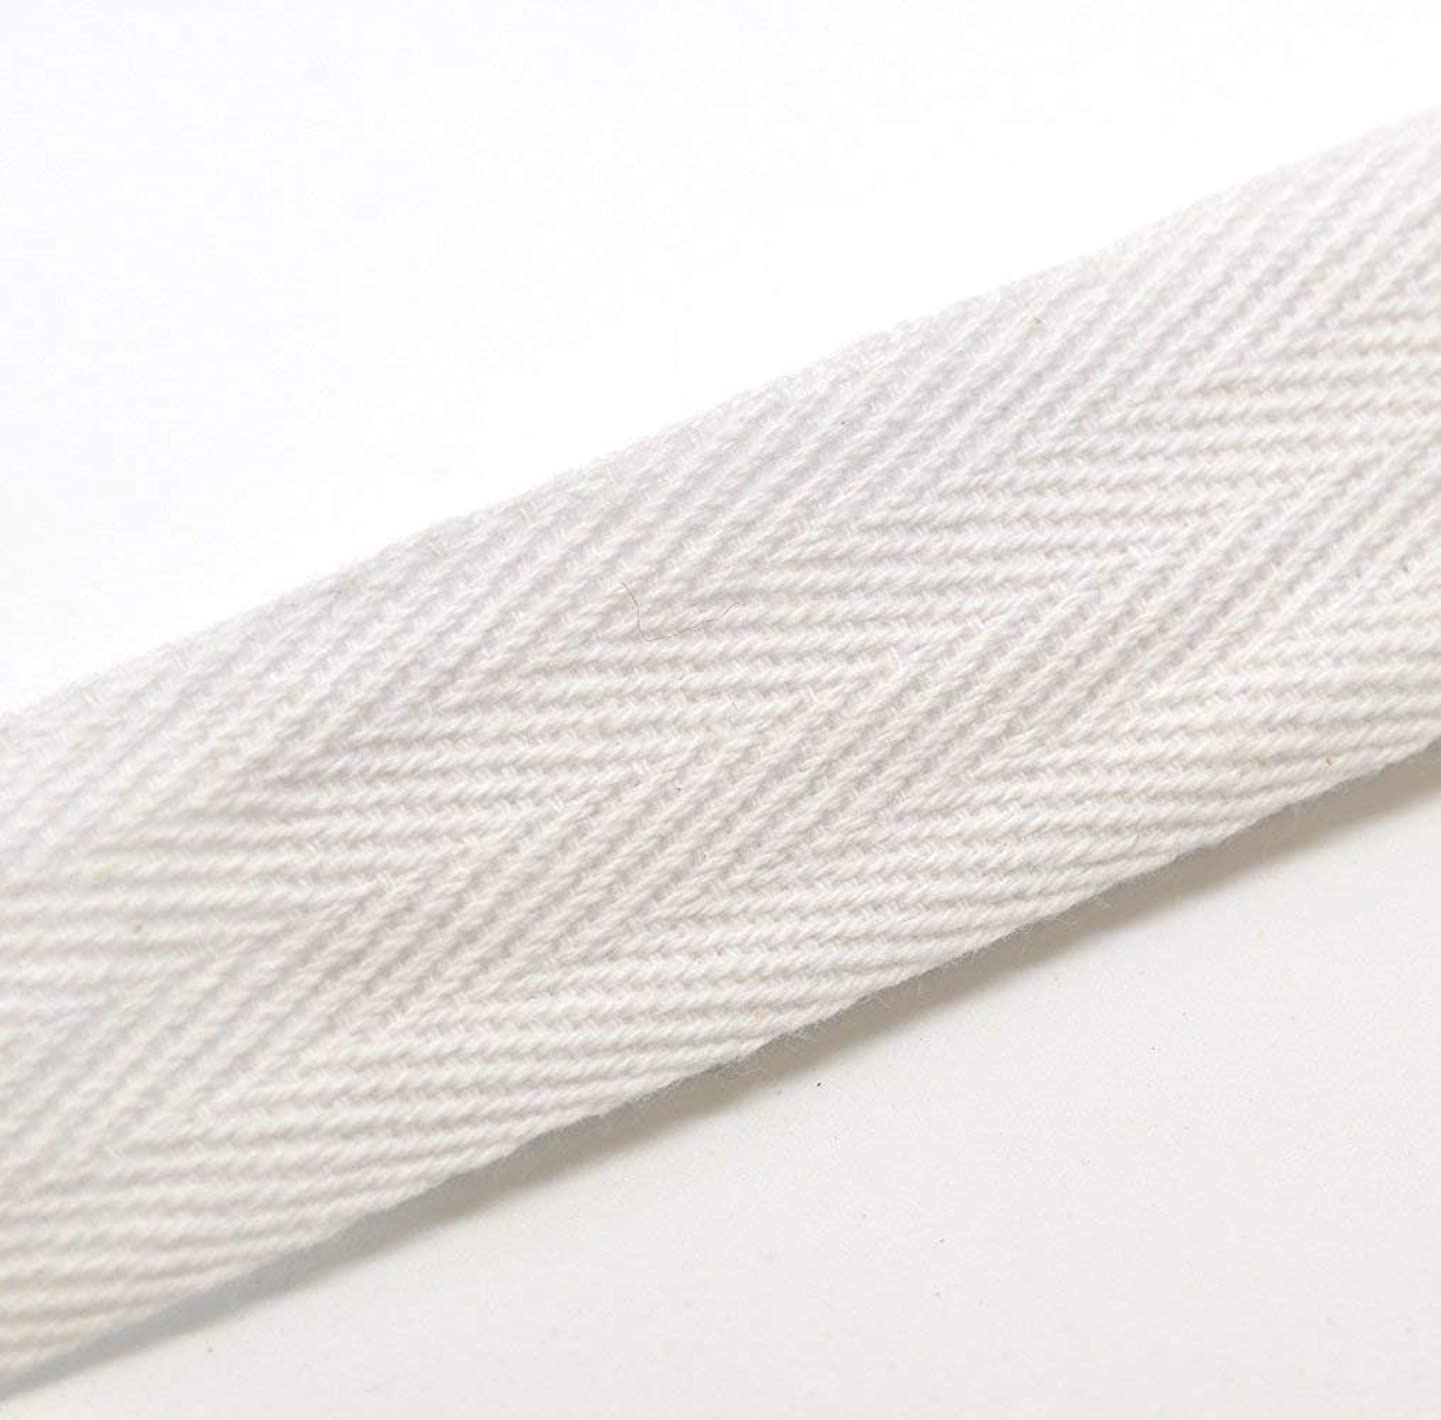 QIANF Twill Tape Ribbon 100% Cotton White 1/2